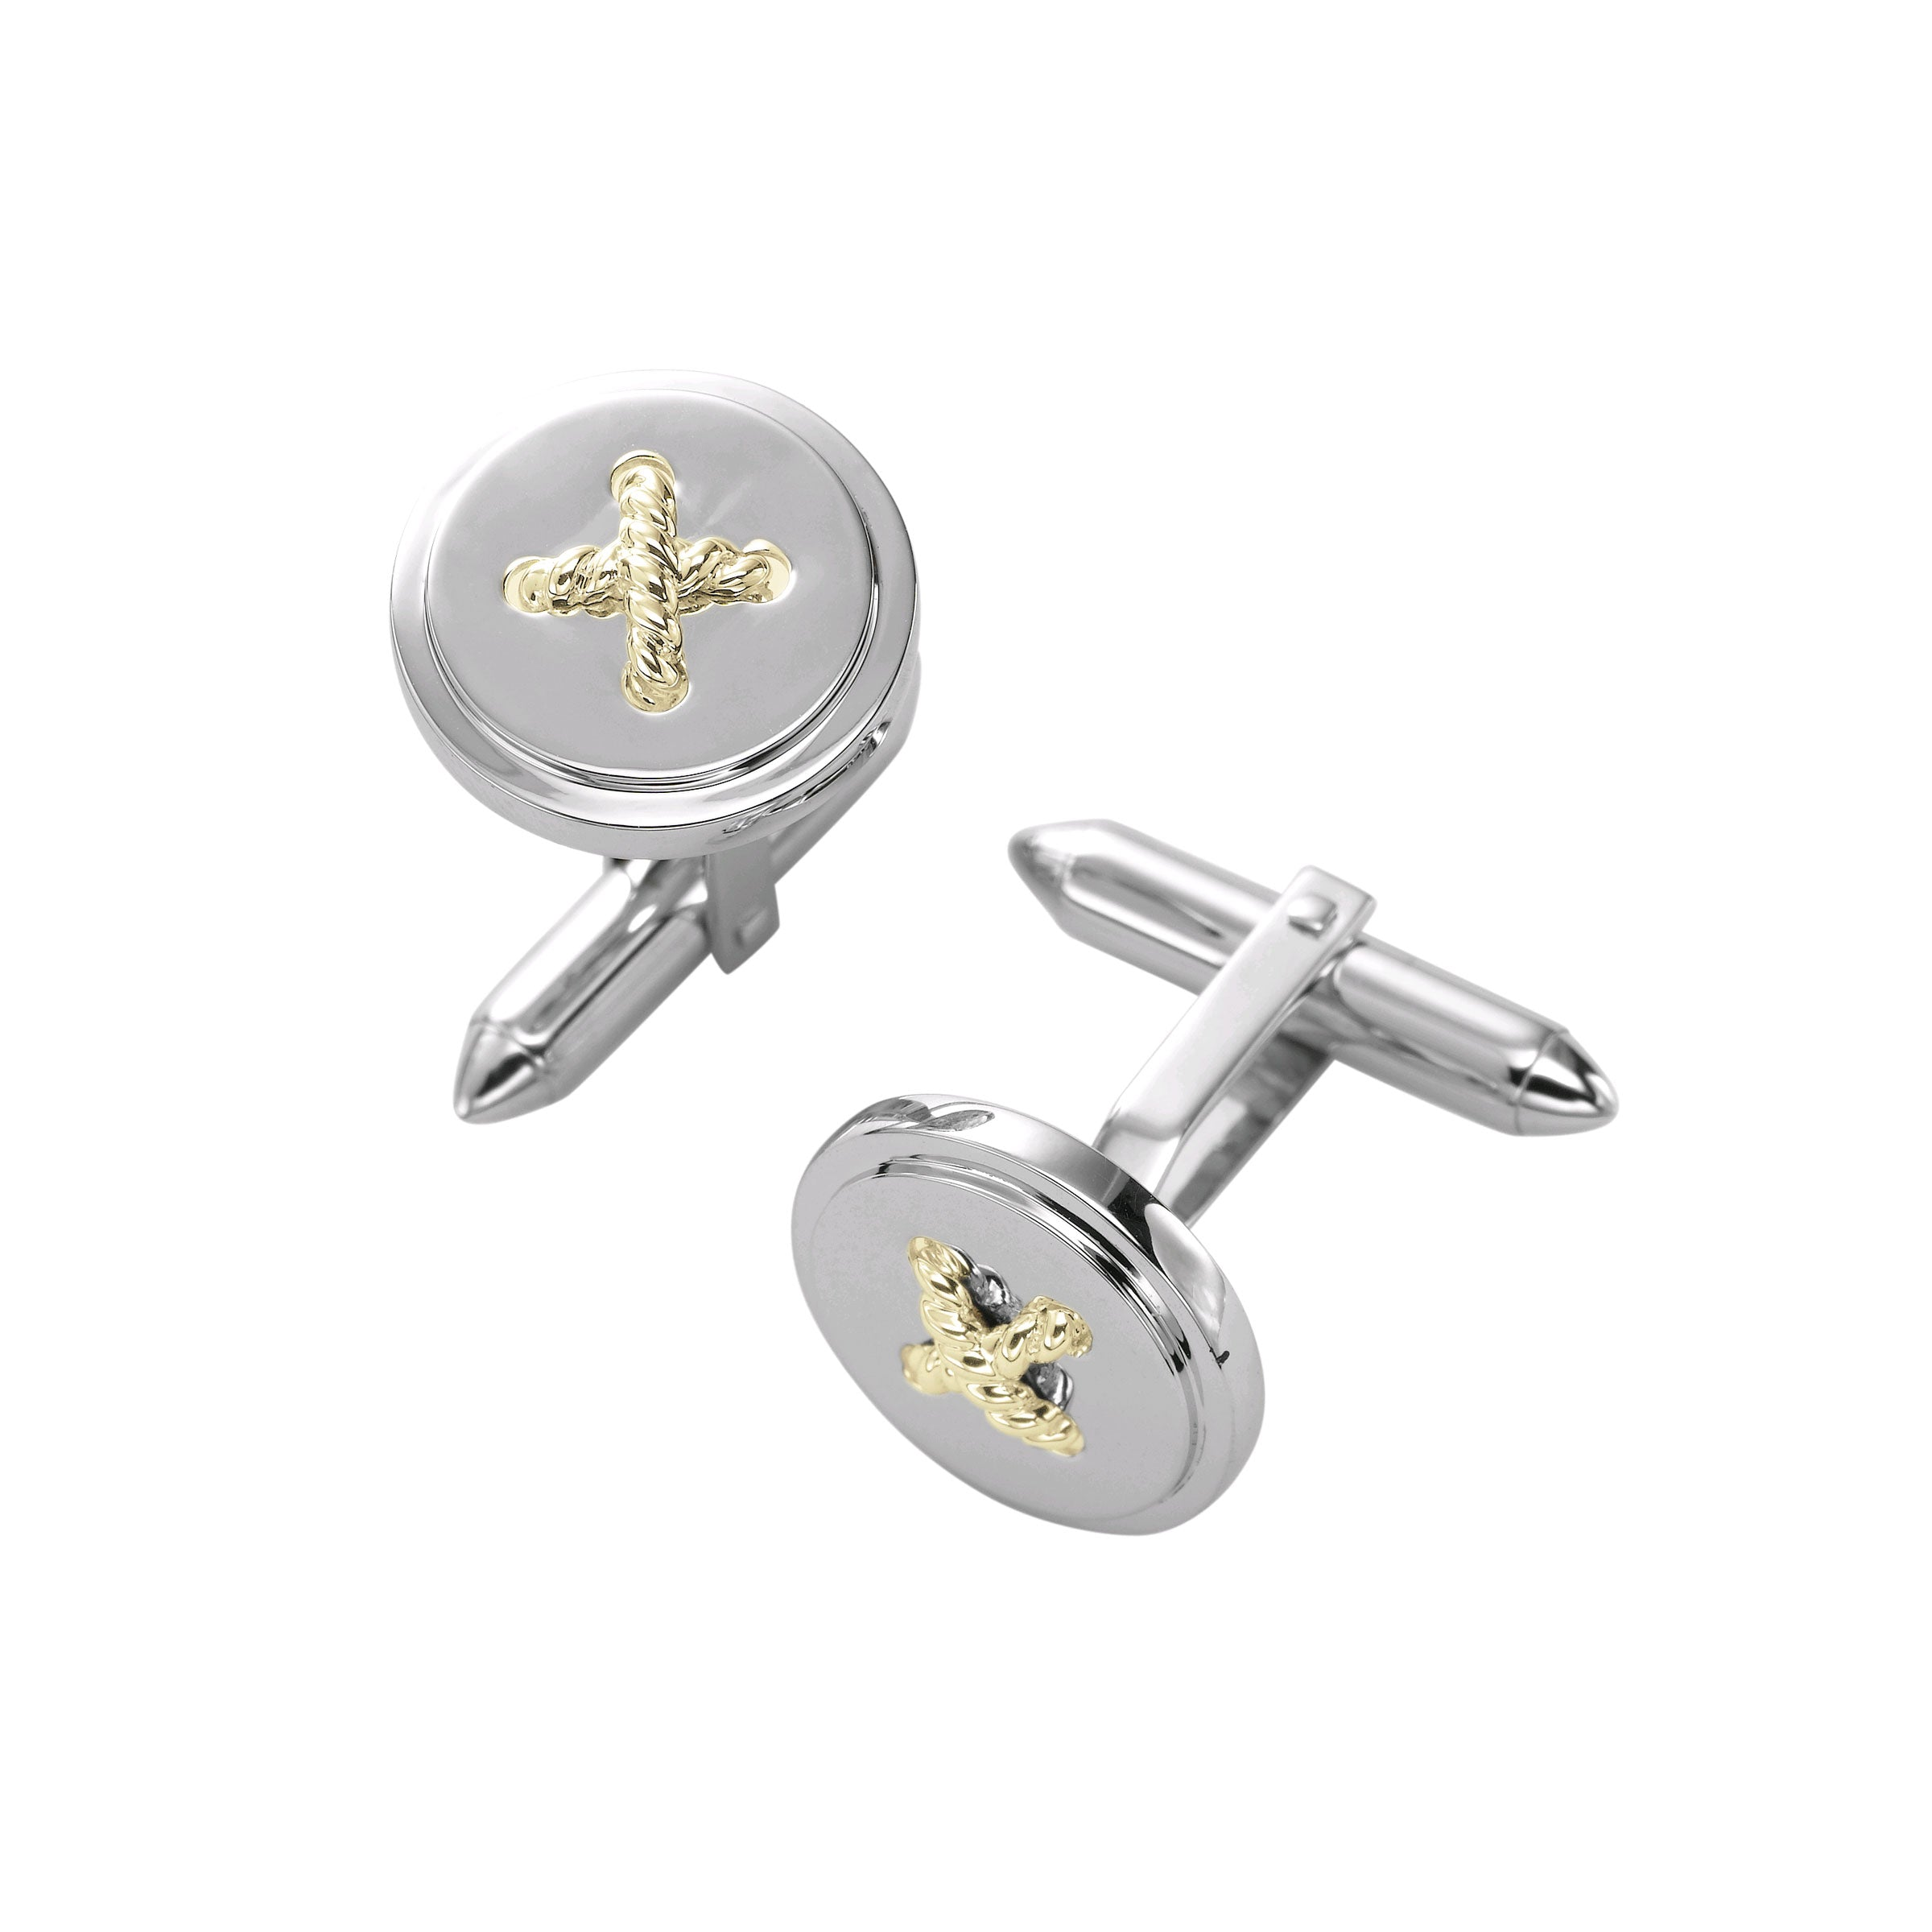 Rope Stitch Design Cufflinks, Sterling Silver and 14K Yellow Gold